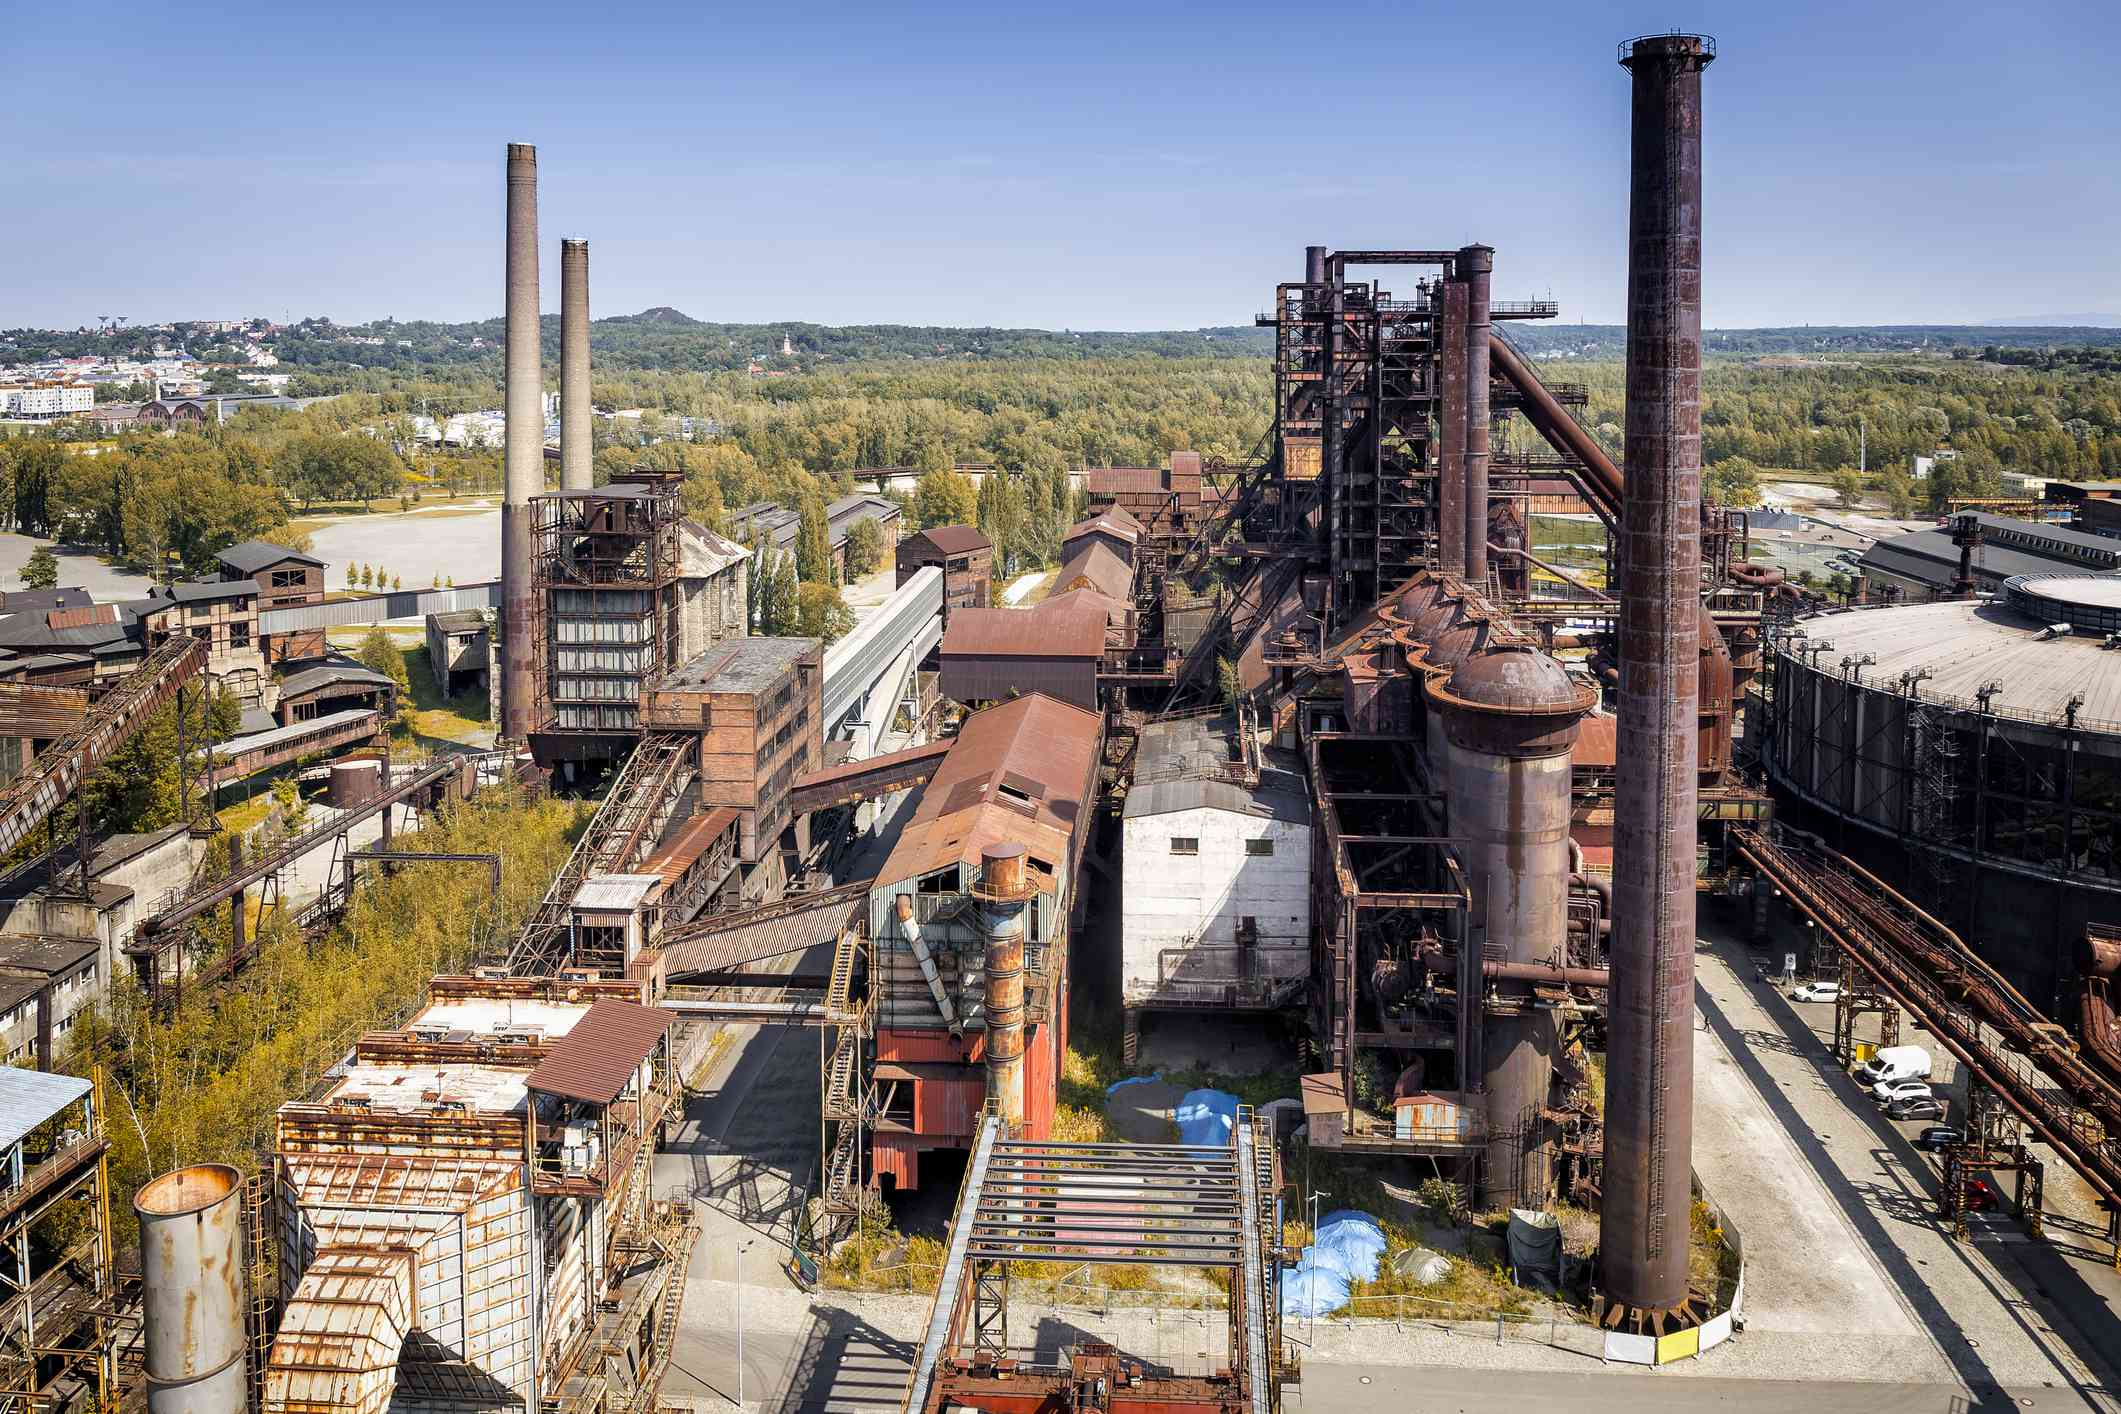 Aeral viev of the old closed coal mine and steel mill